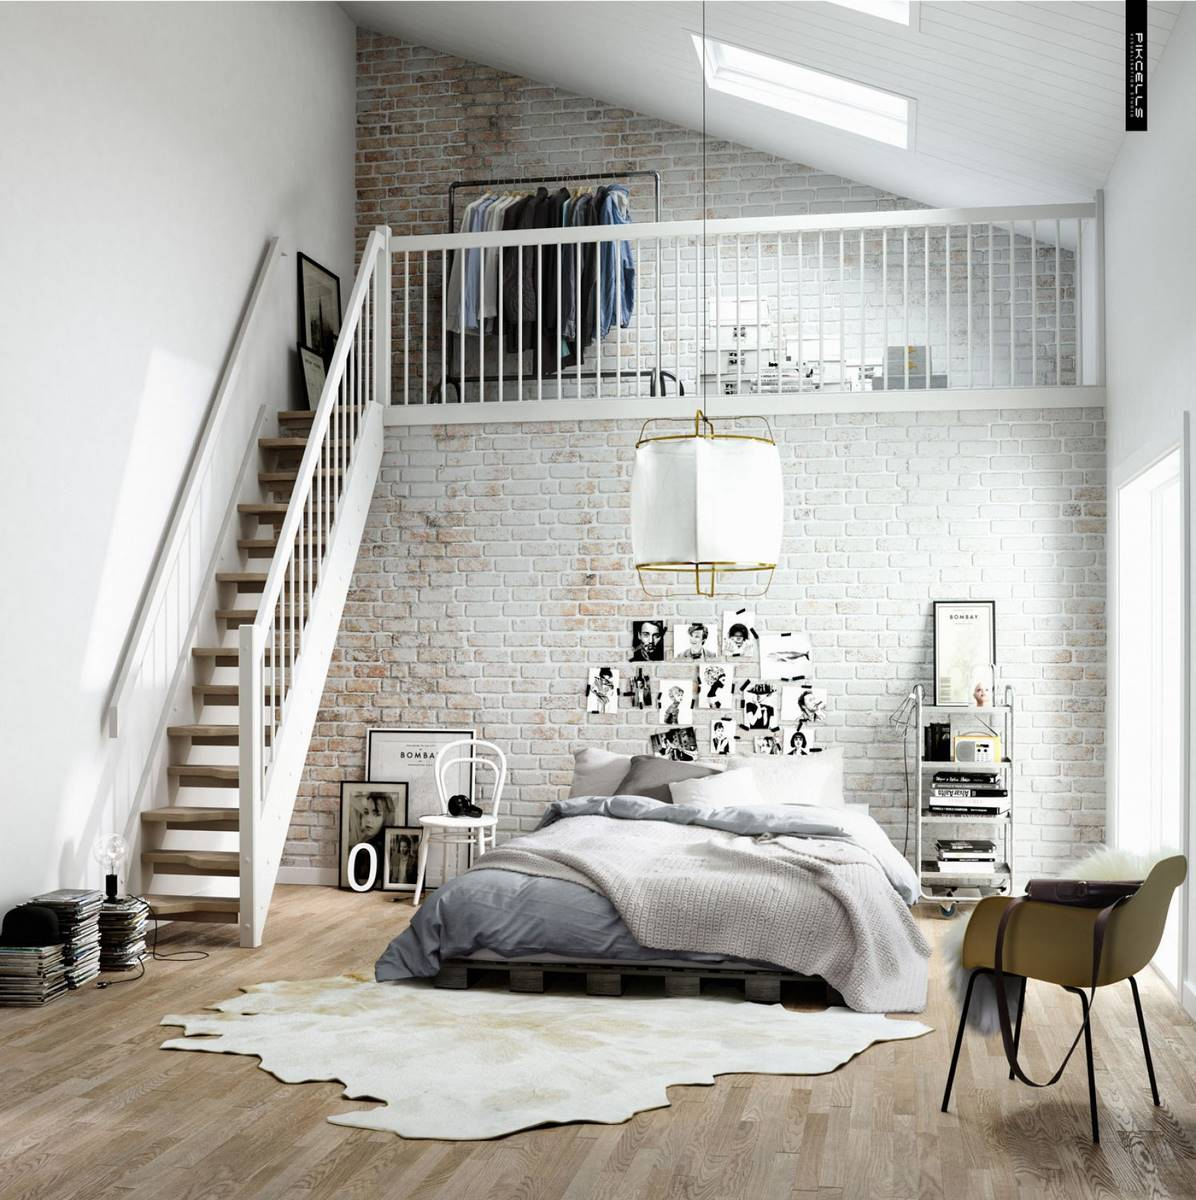 airy-and-fresh-scandinavian-bedroom-with-upstairs-closet-by-pikcells-visualisation-studio